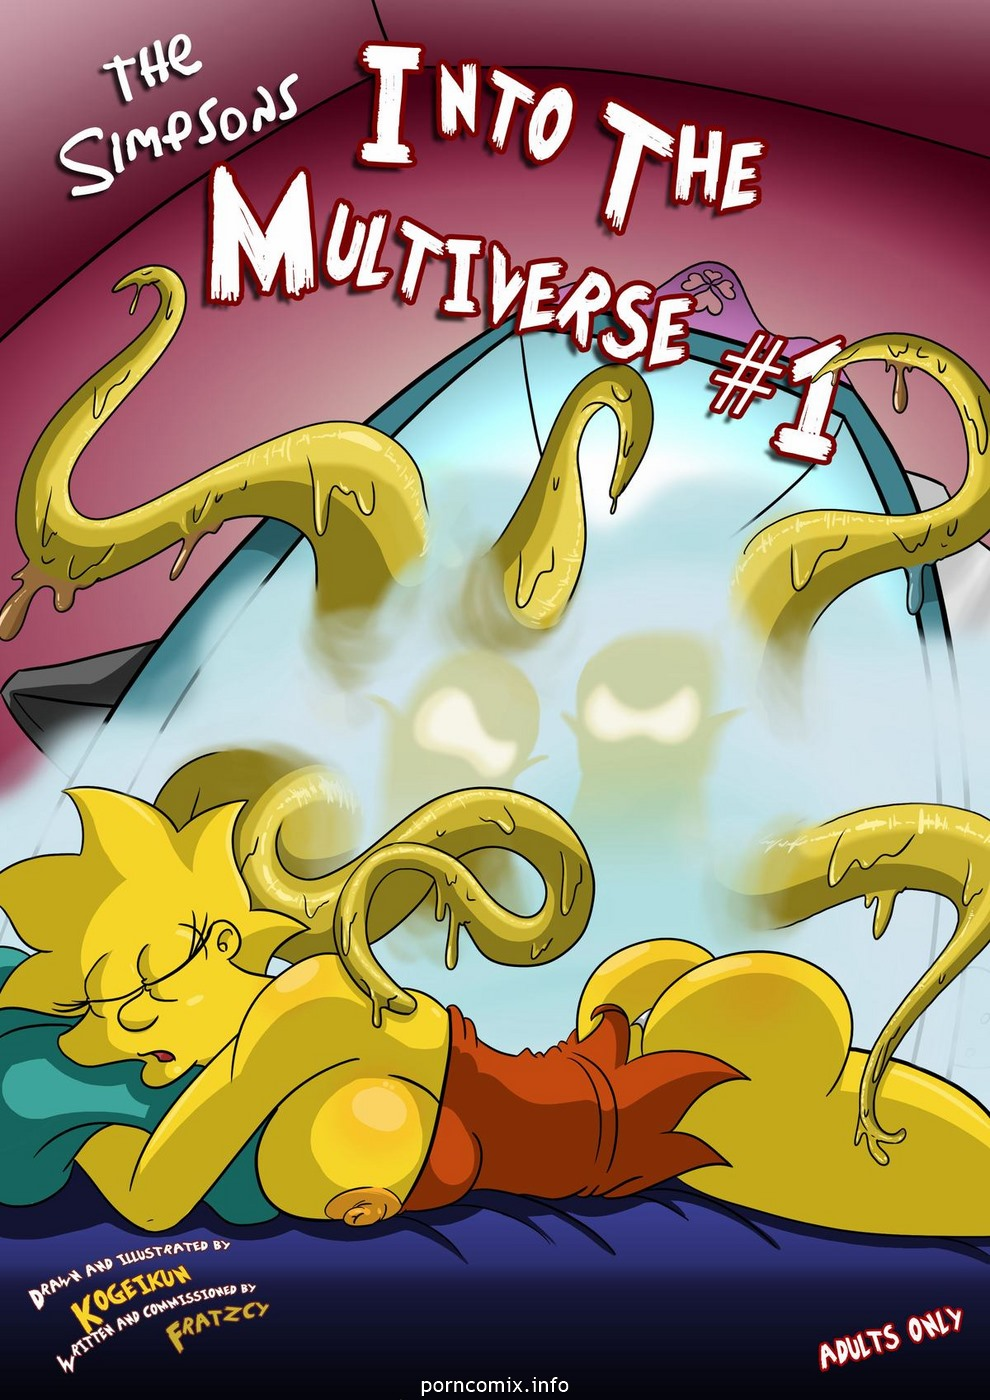 Porn Comics - Simpsons Into the Multiverse porn comics 8 muses